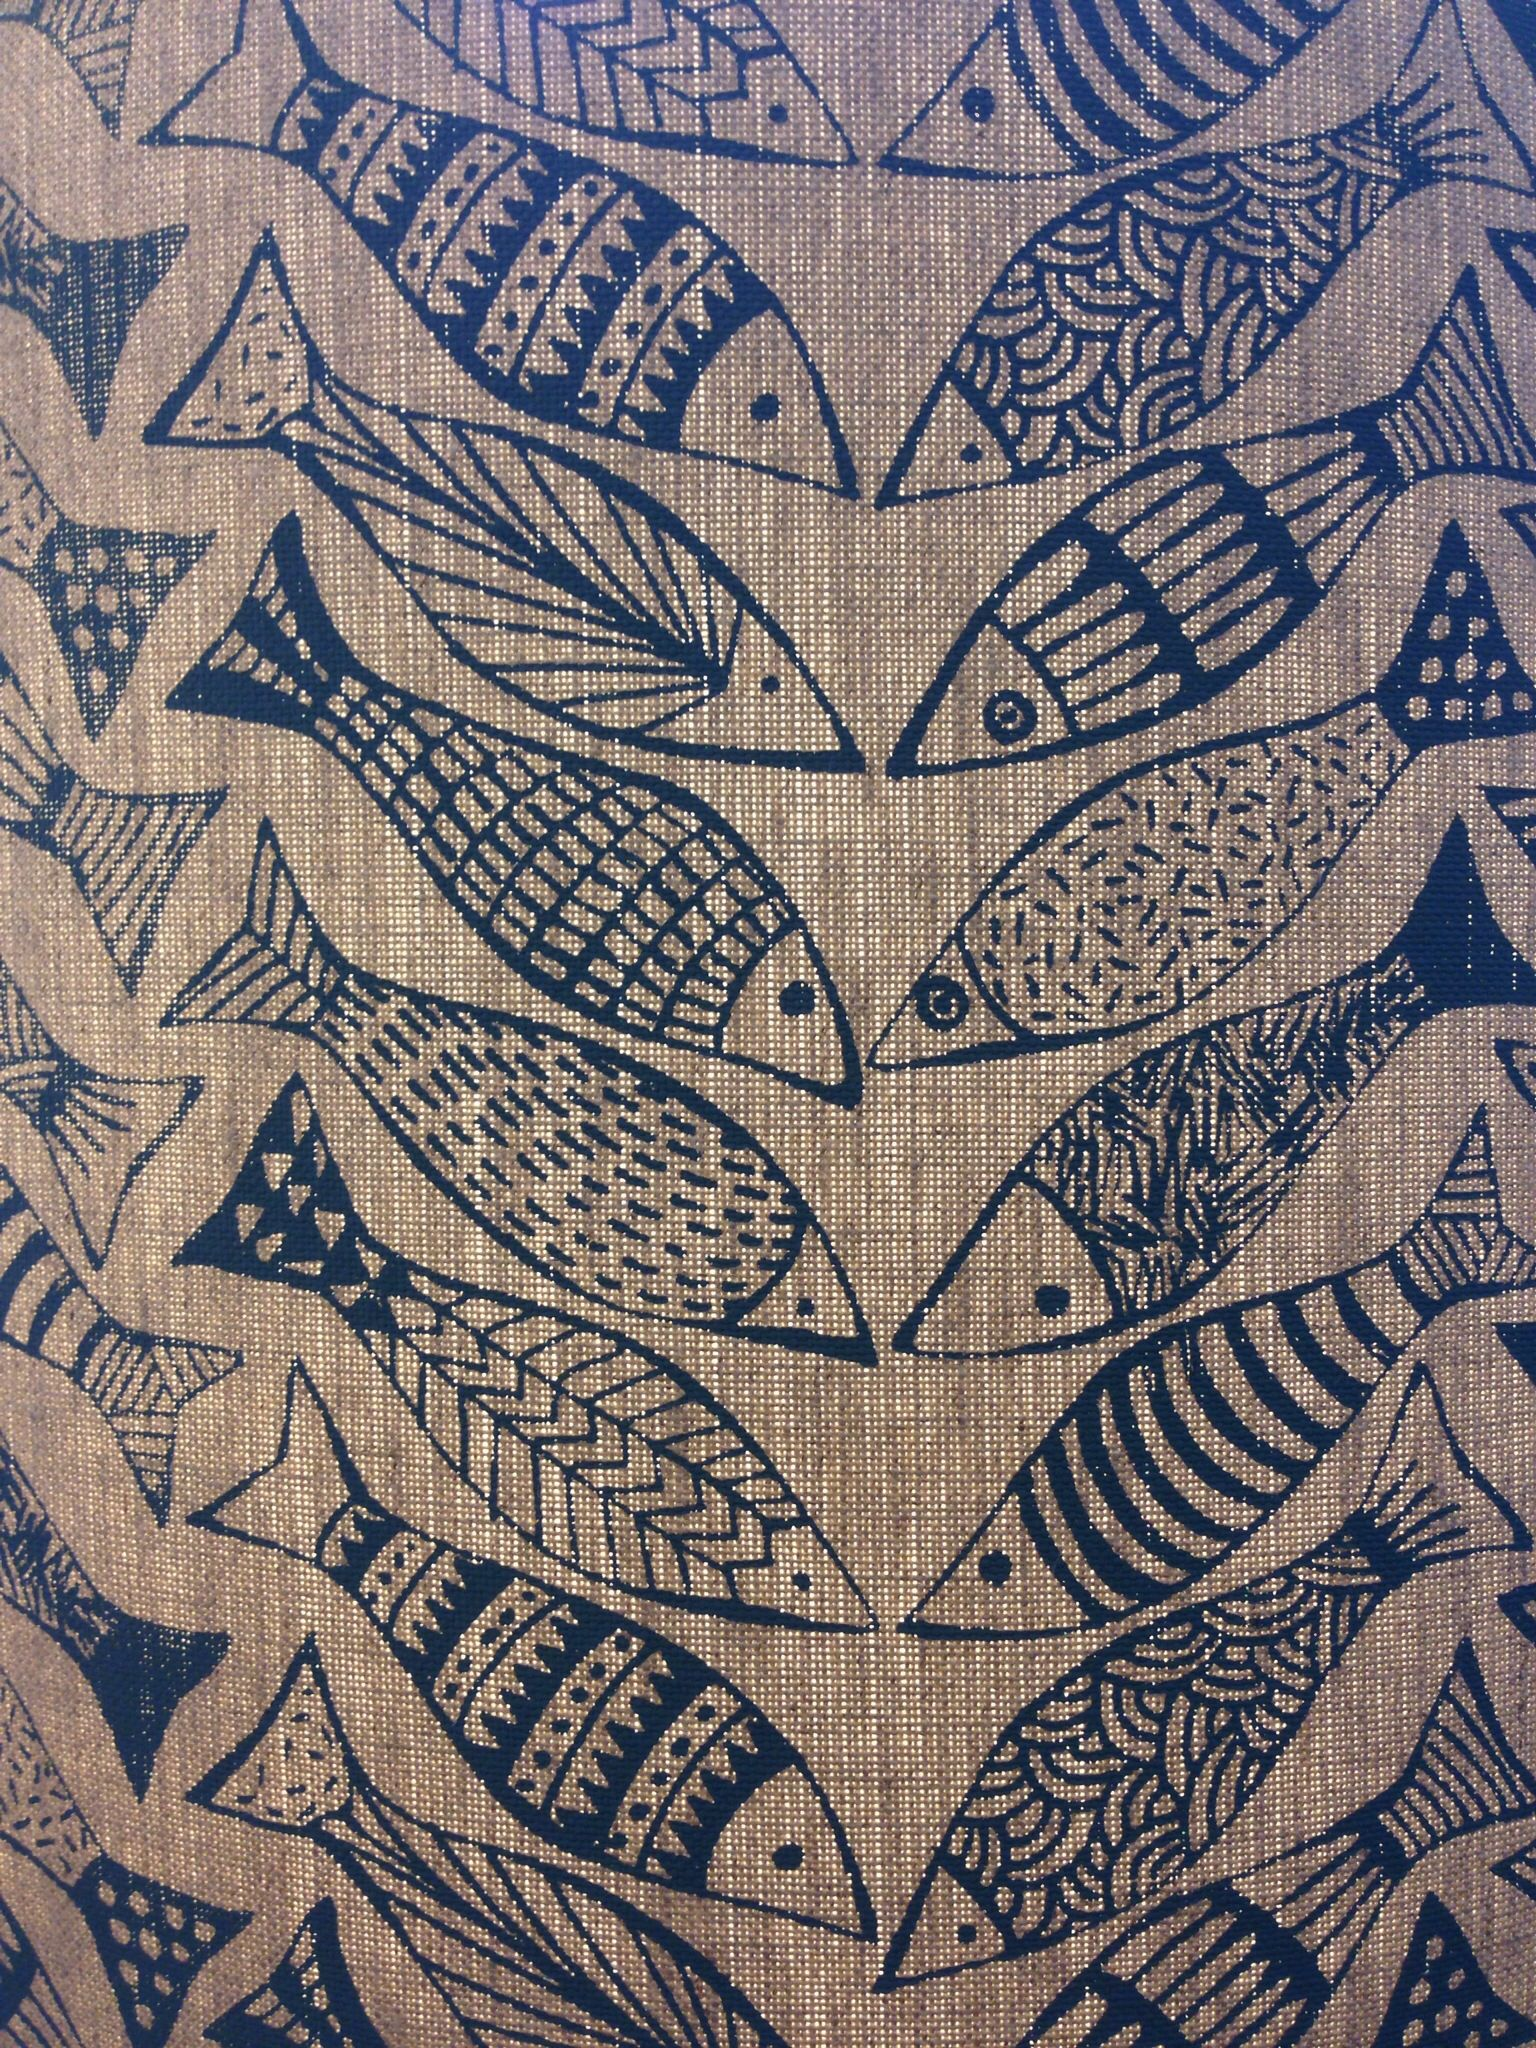 Fish fabric patterns pinterest fish fabrics and for Fish pattern fabric